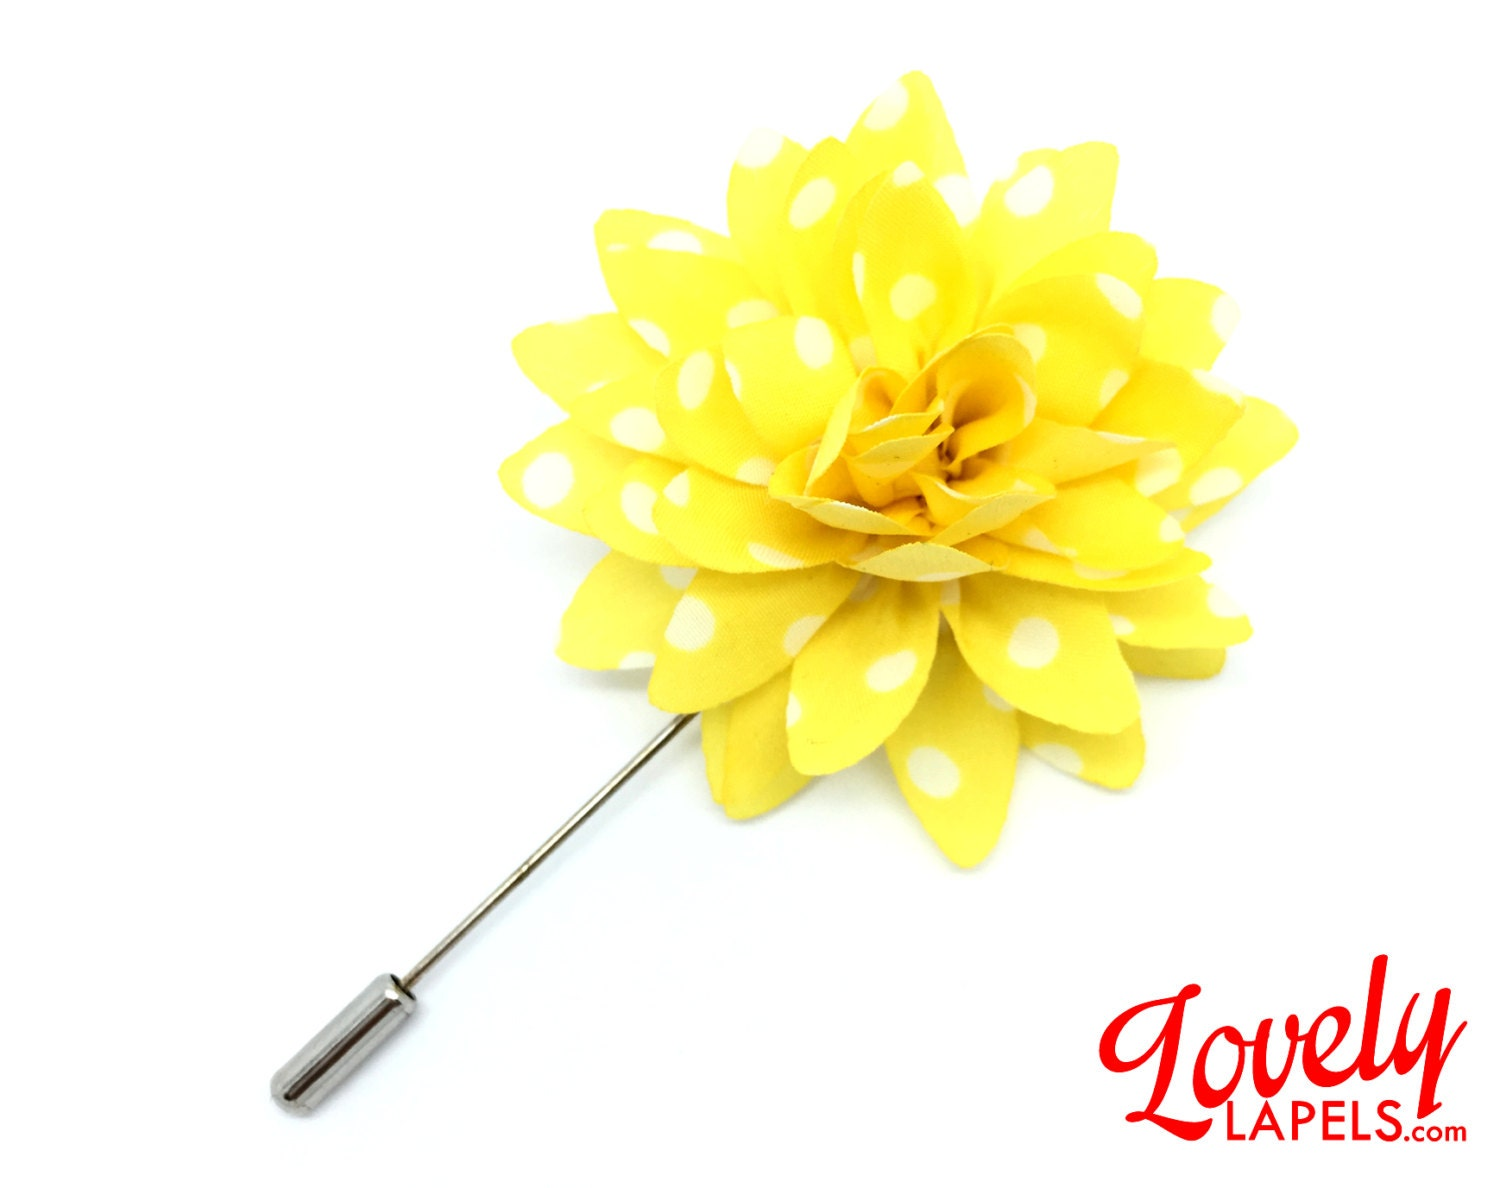 FLP1819 Flower Lapel Pin Yellow with White Dots by LovelyLapels